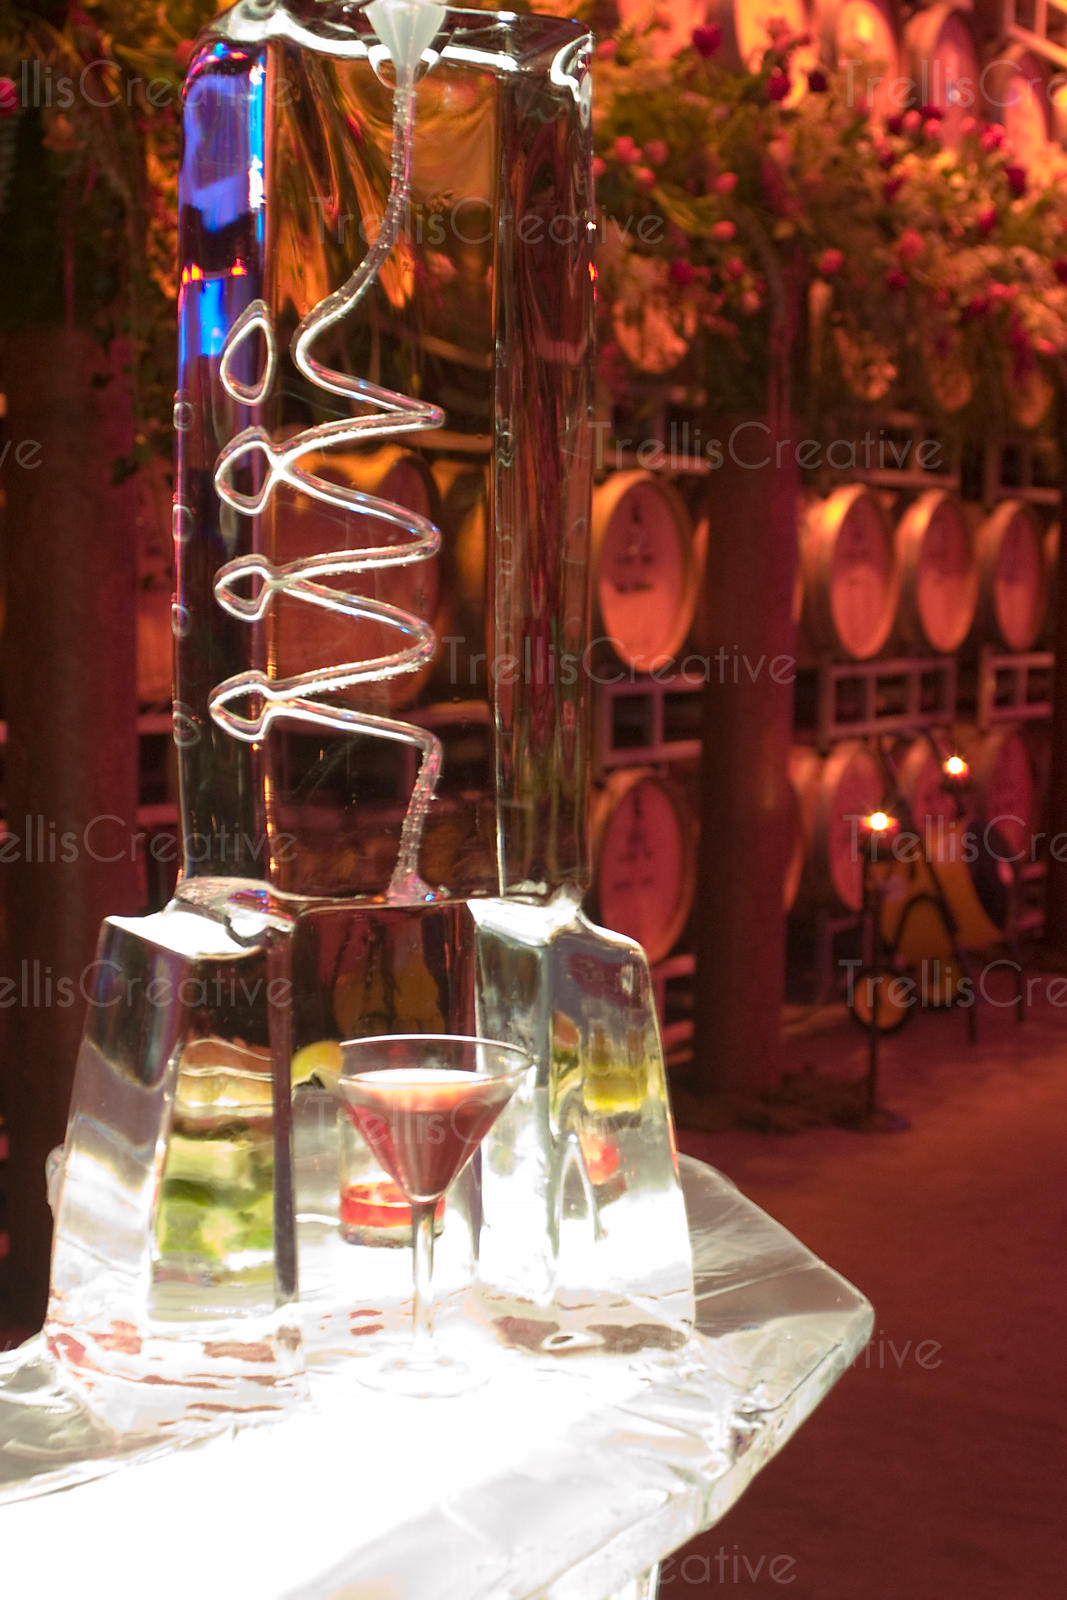 Martini in glass under ice sculpture